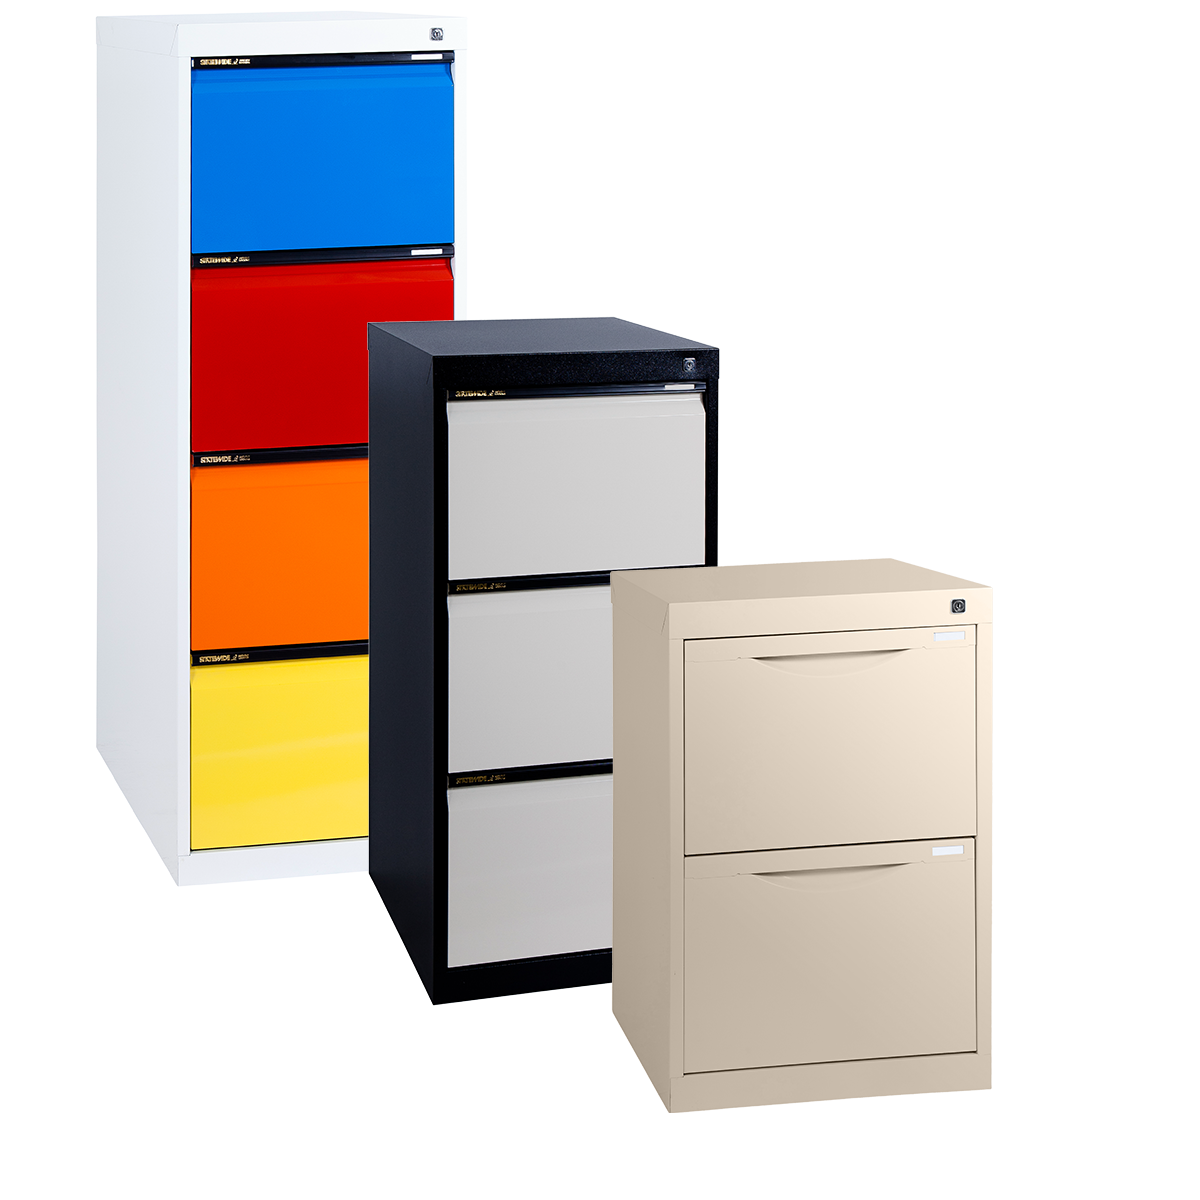 vertical filing cabinets 3 reasons why lateral filing is better in a busy office 27937